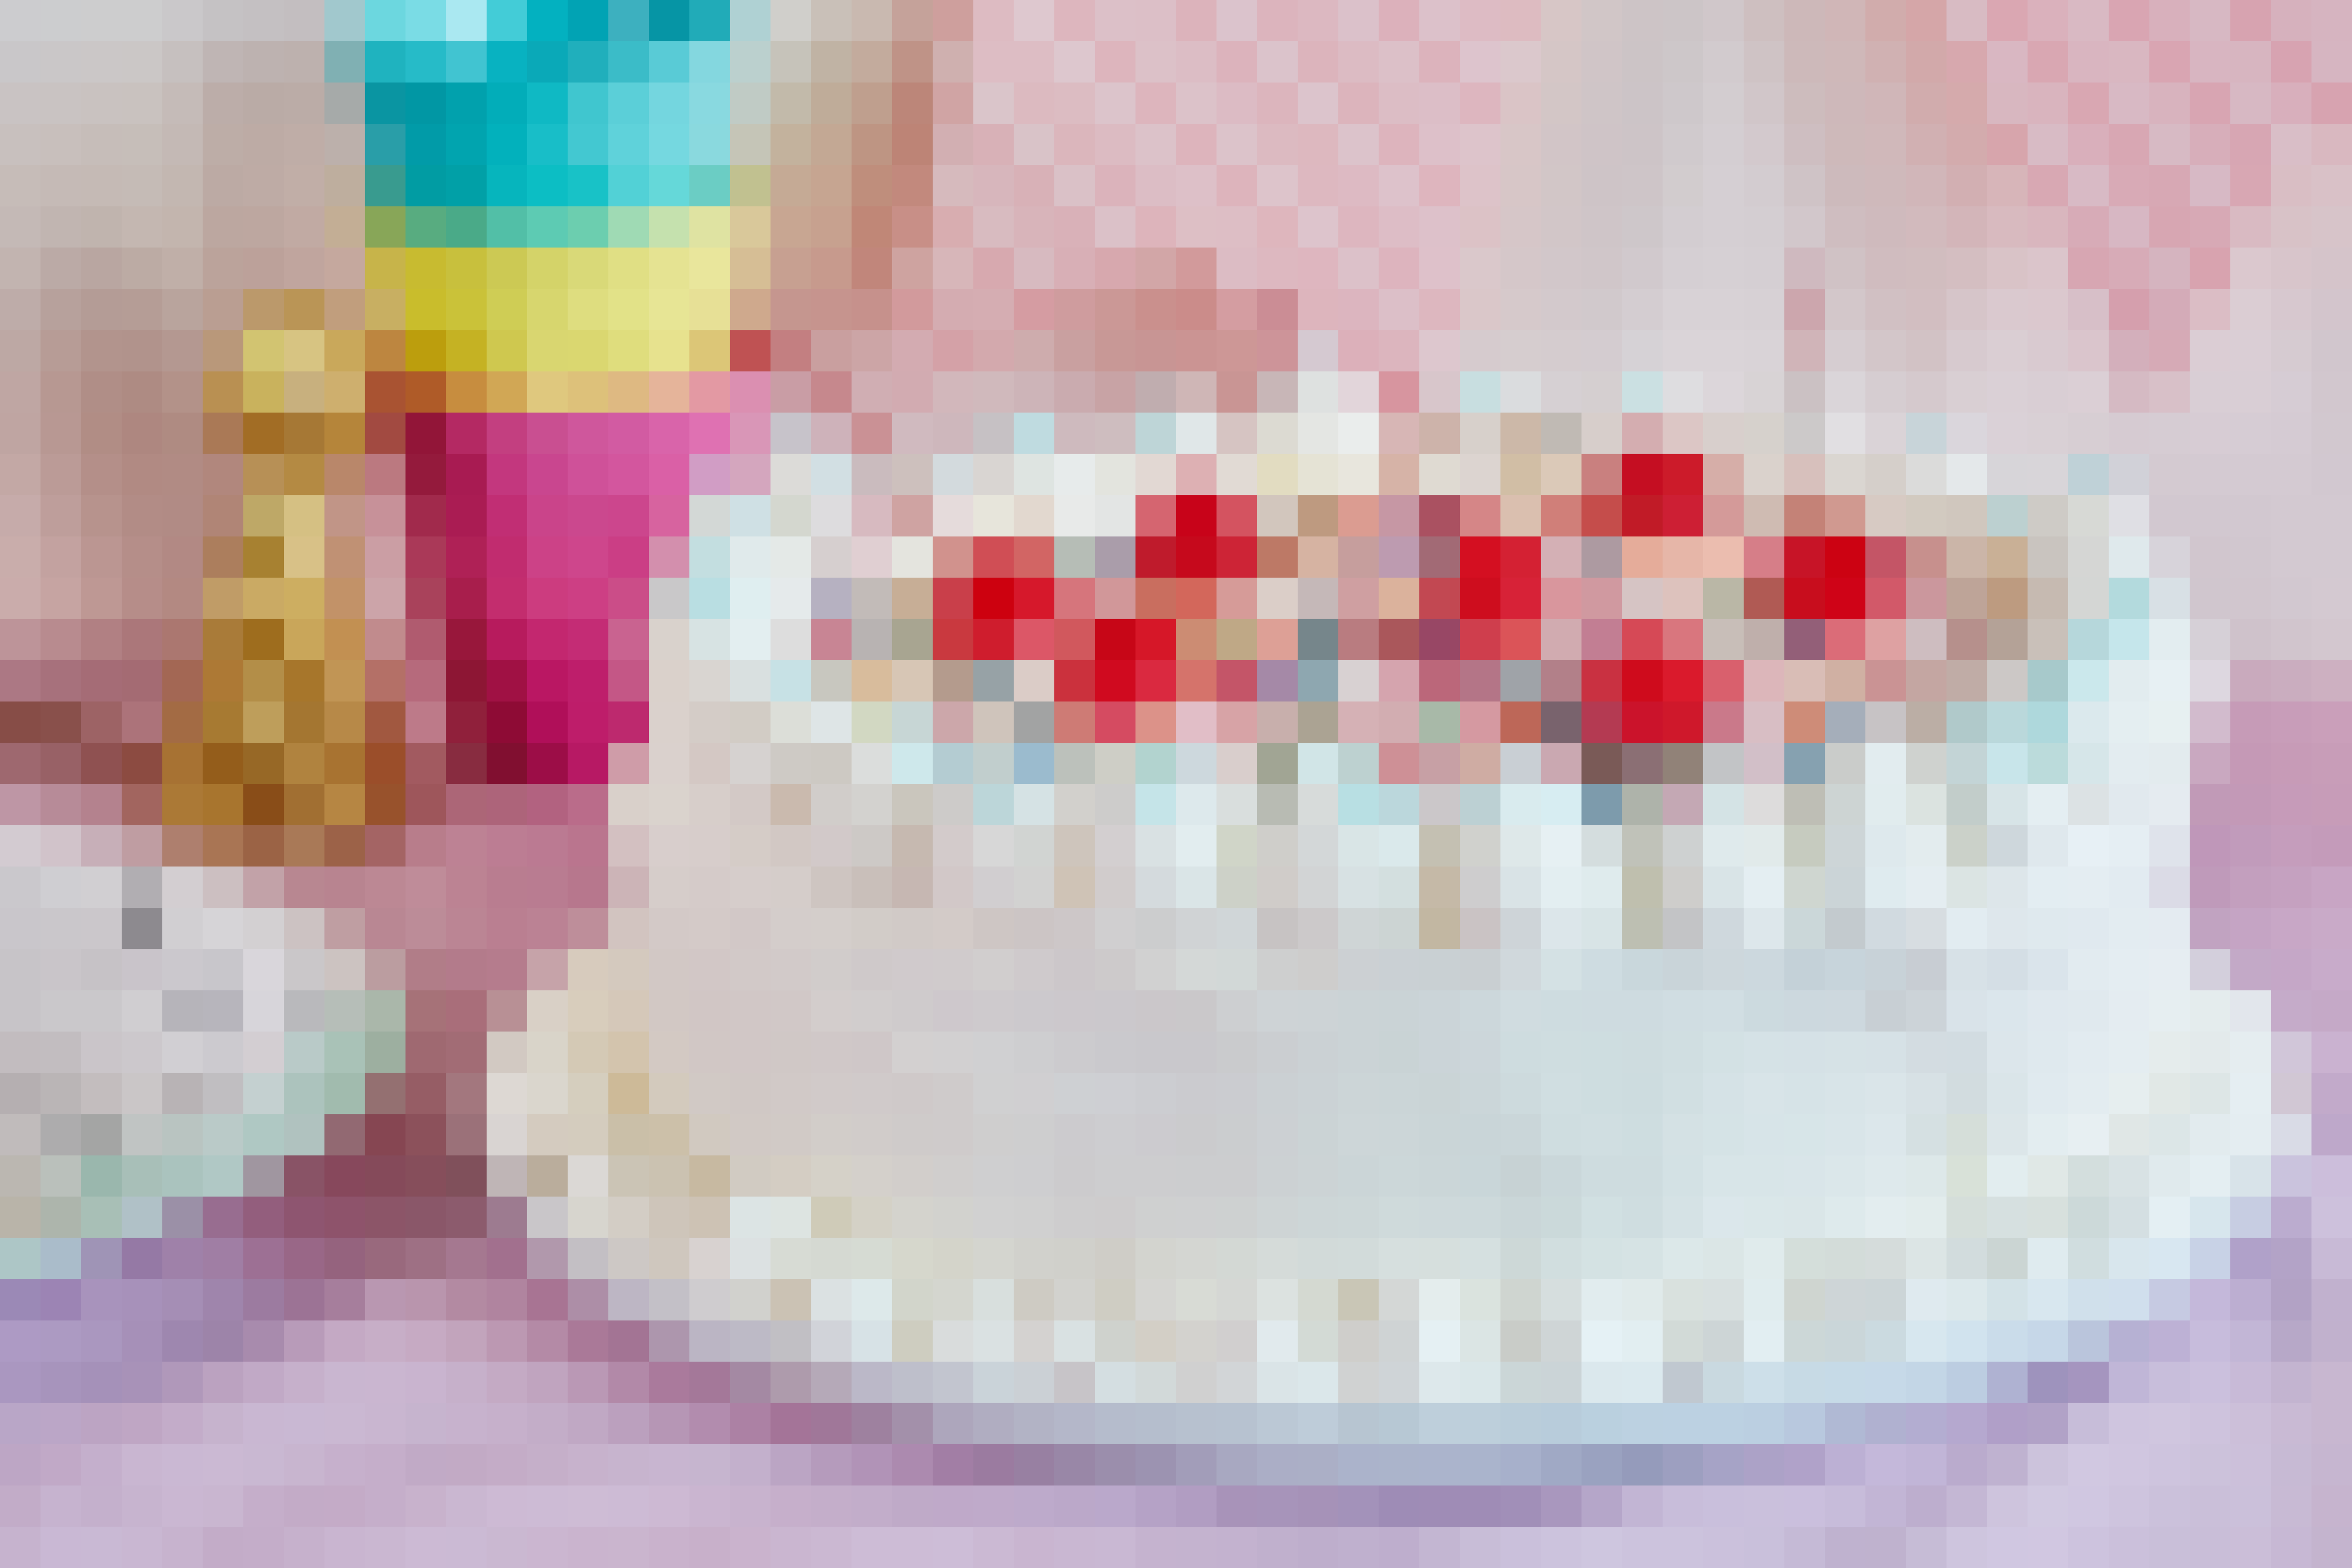 How To Make an Ice Cream Cake (Even Better than Dairy Queen!): gallery image 13